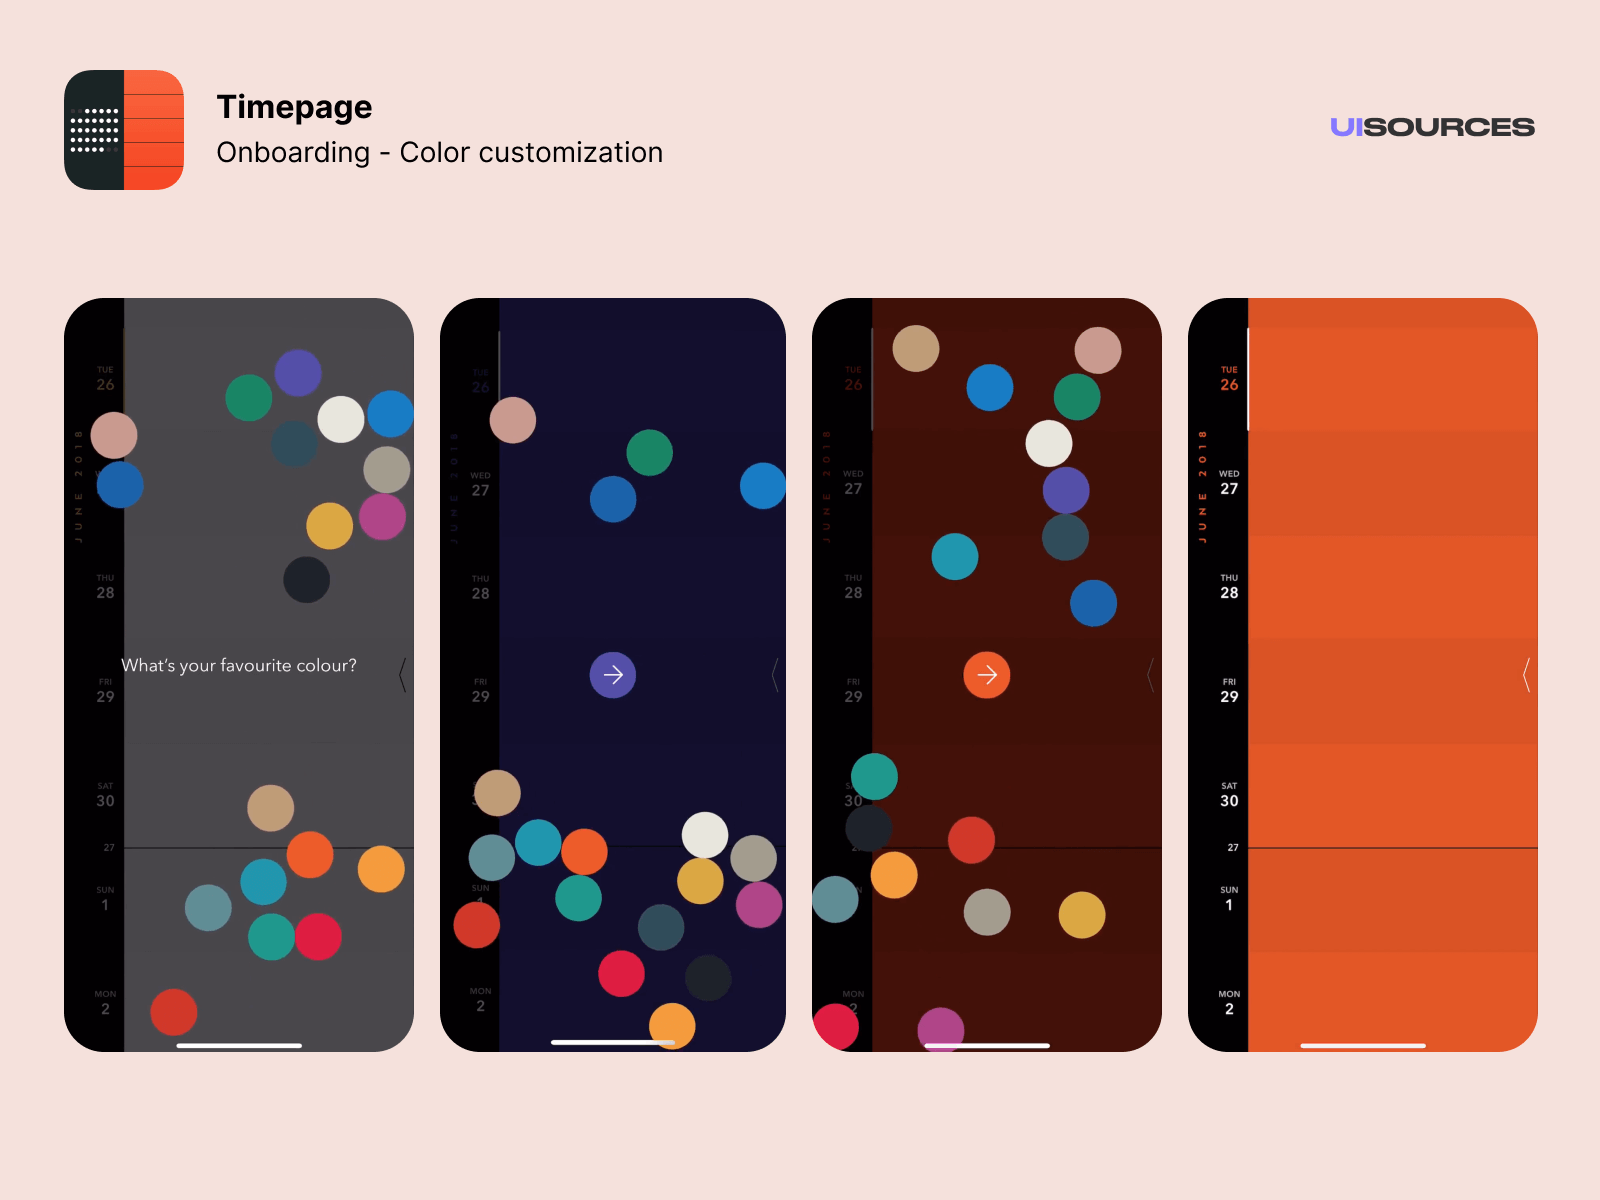 Pick your favourite color to customize the app